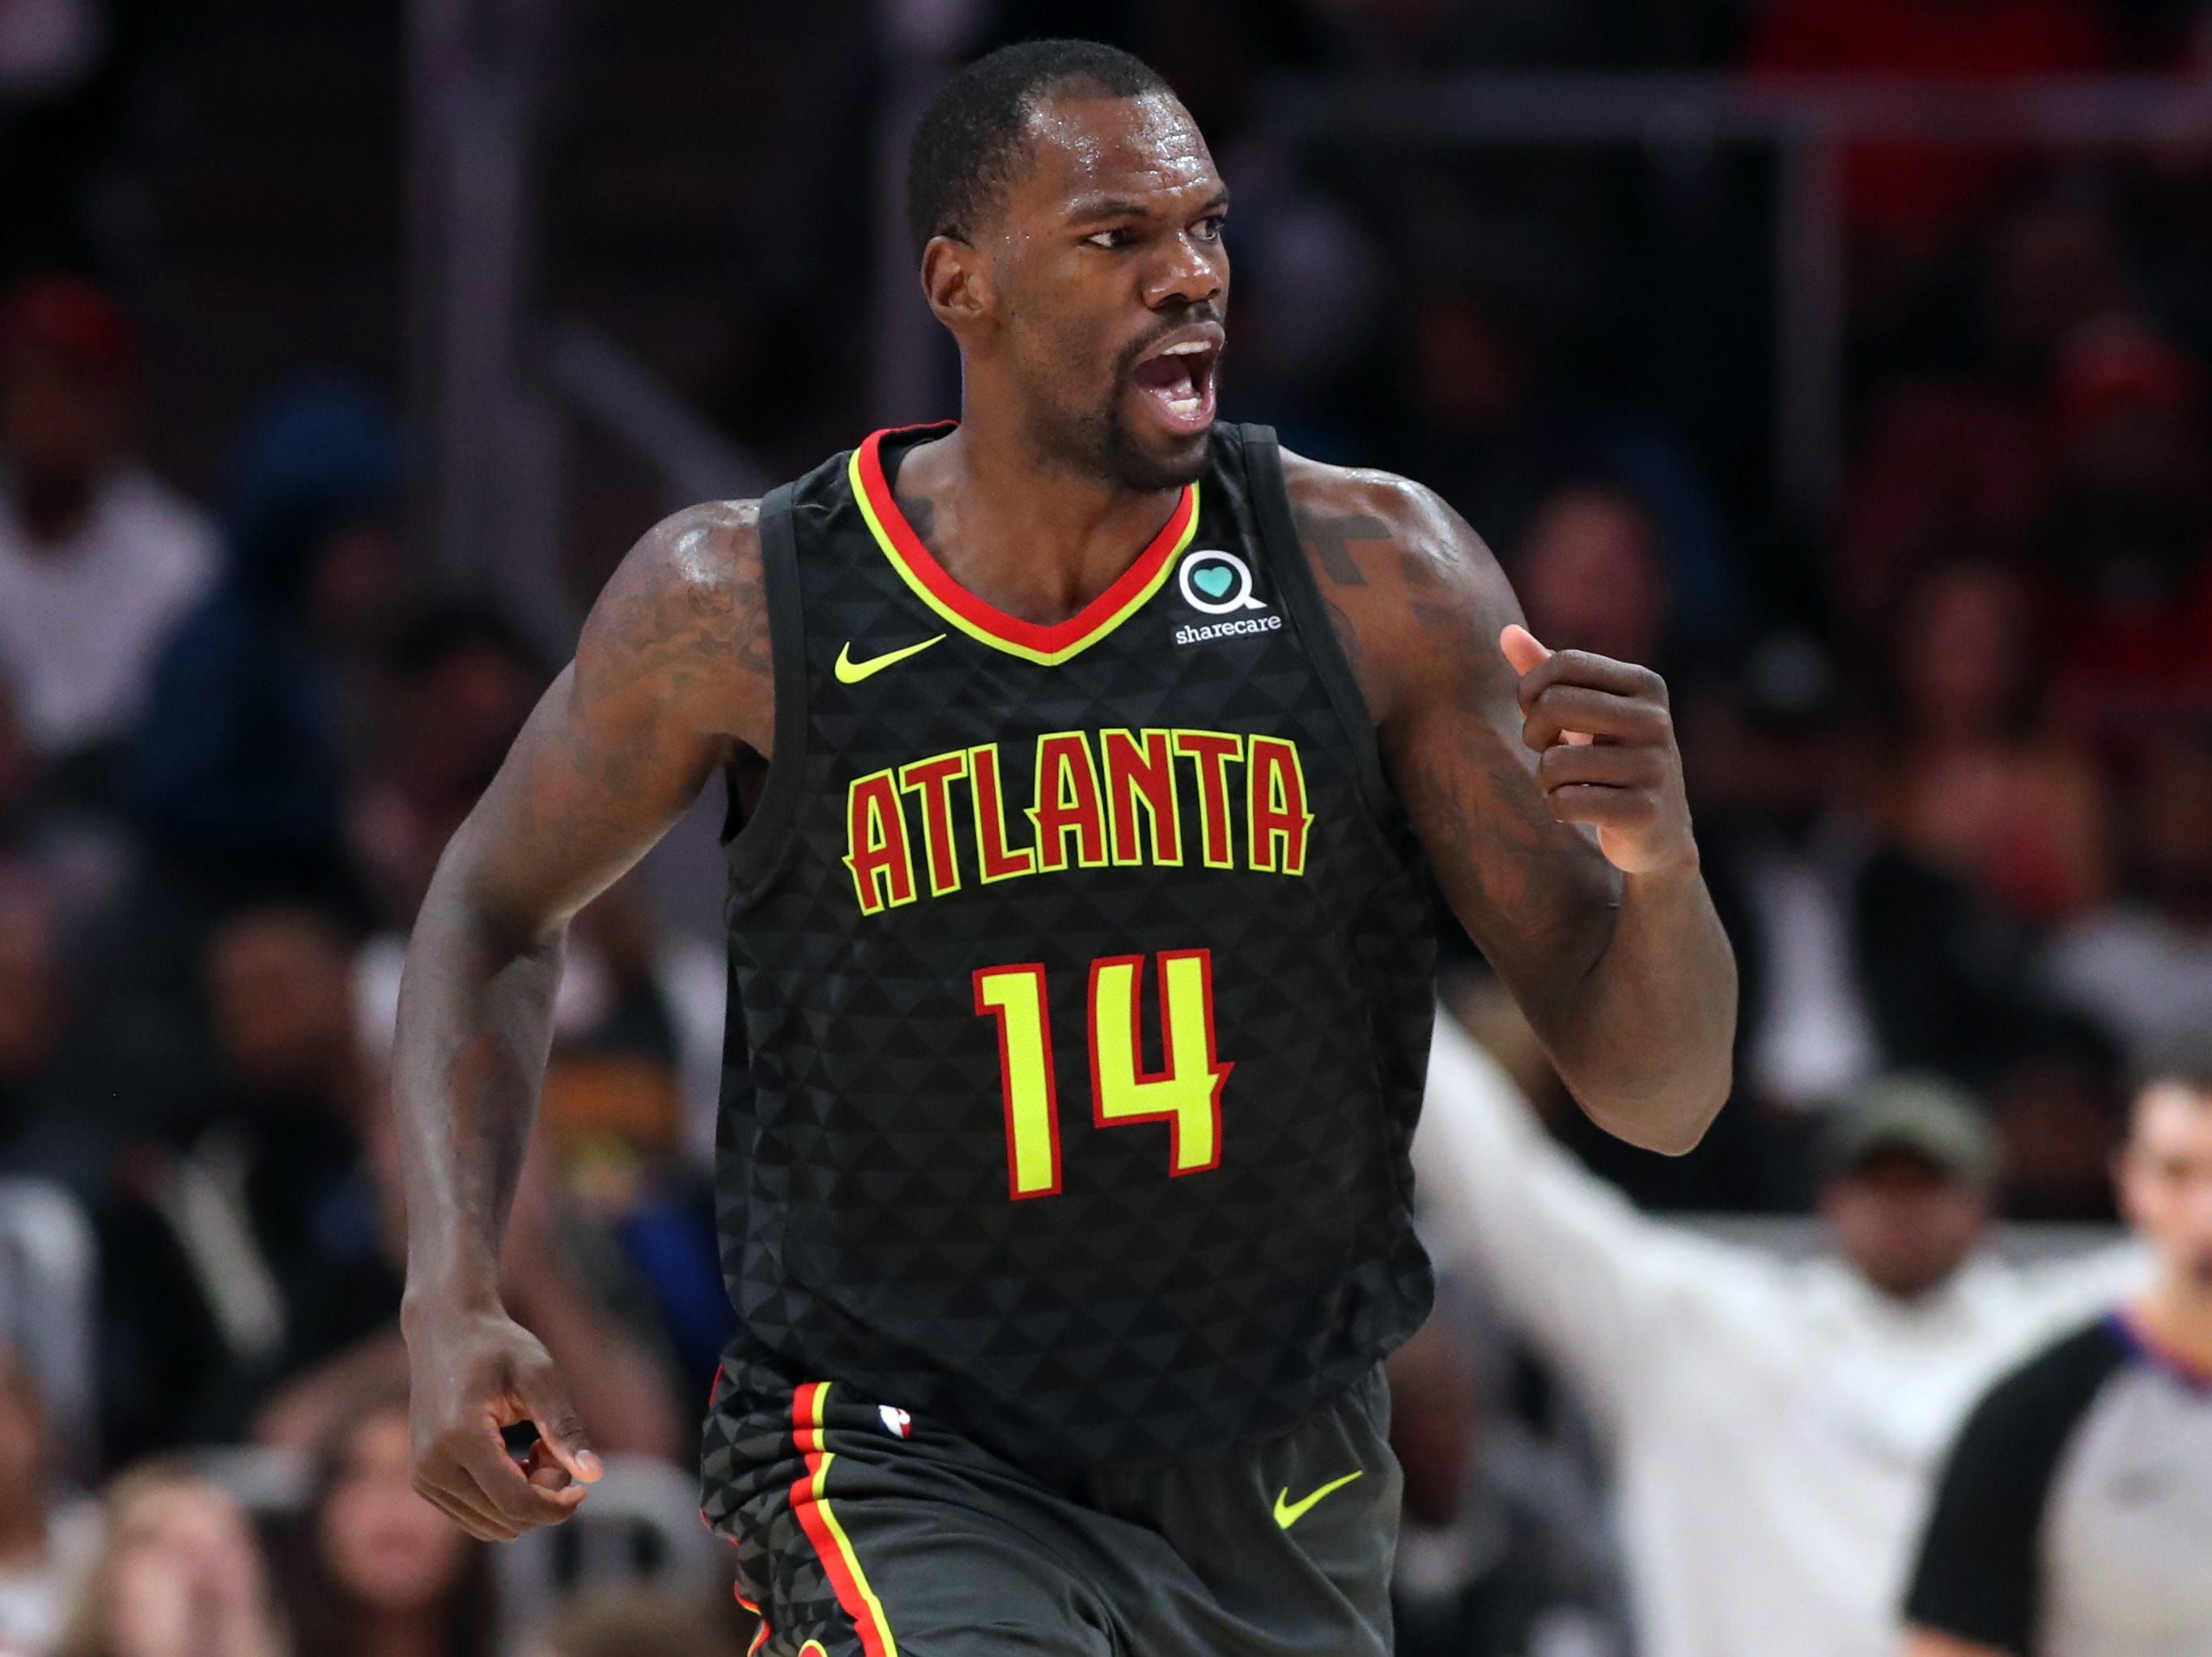 Dec 26, 2018; Atlanta, GA, USA; Atlanta Hawks center Dewayne Dedmon (14) reacts after a dunk in the second quarter against the Indiana Pacers at State Farm Arena. Mandatory Credit: Jason Getz-USA TODAY Sports